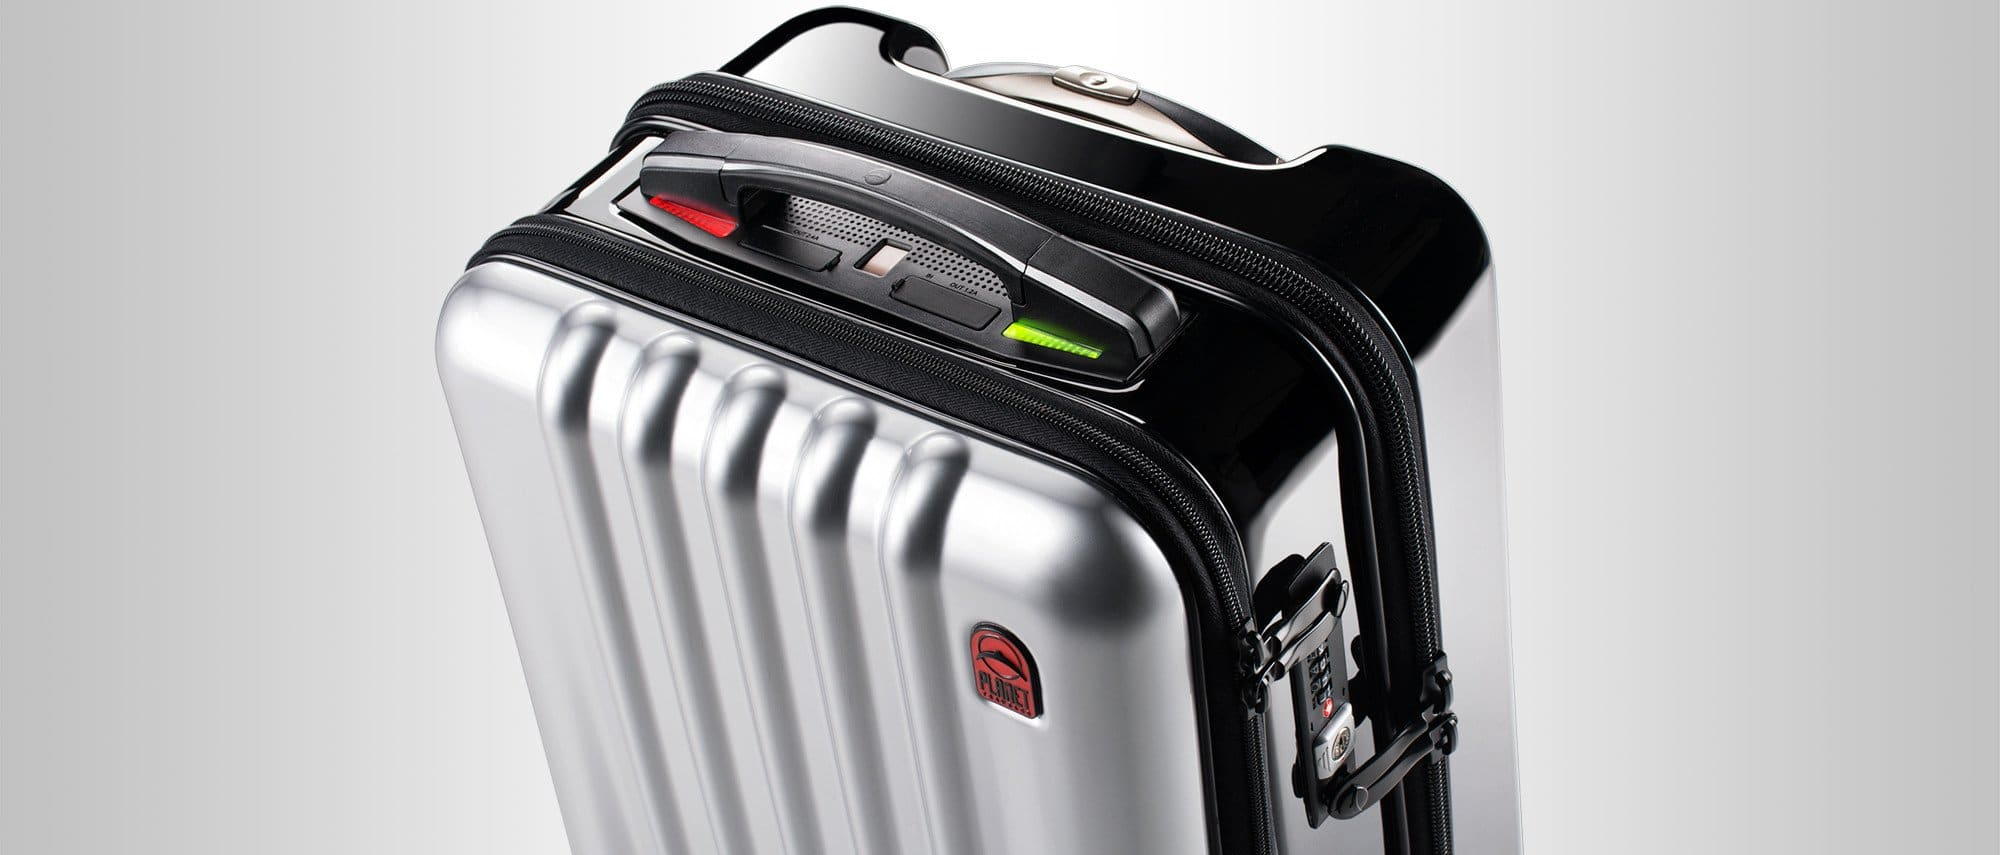 American Airlines And Delta Air Lines Both Have Announced Restrictions On Passenger Carried Smart Bags That Contain Lithium Ion Battery Banks